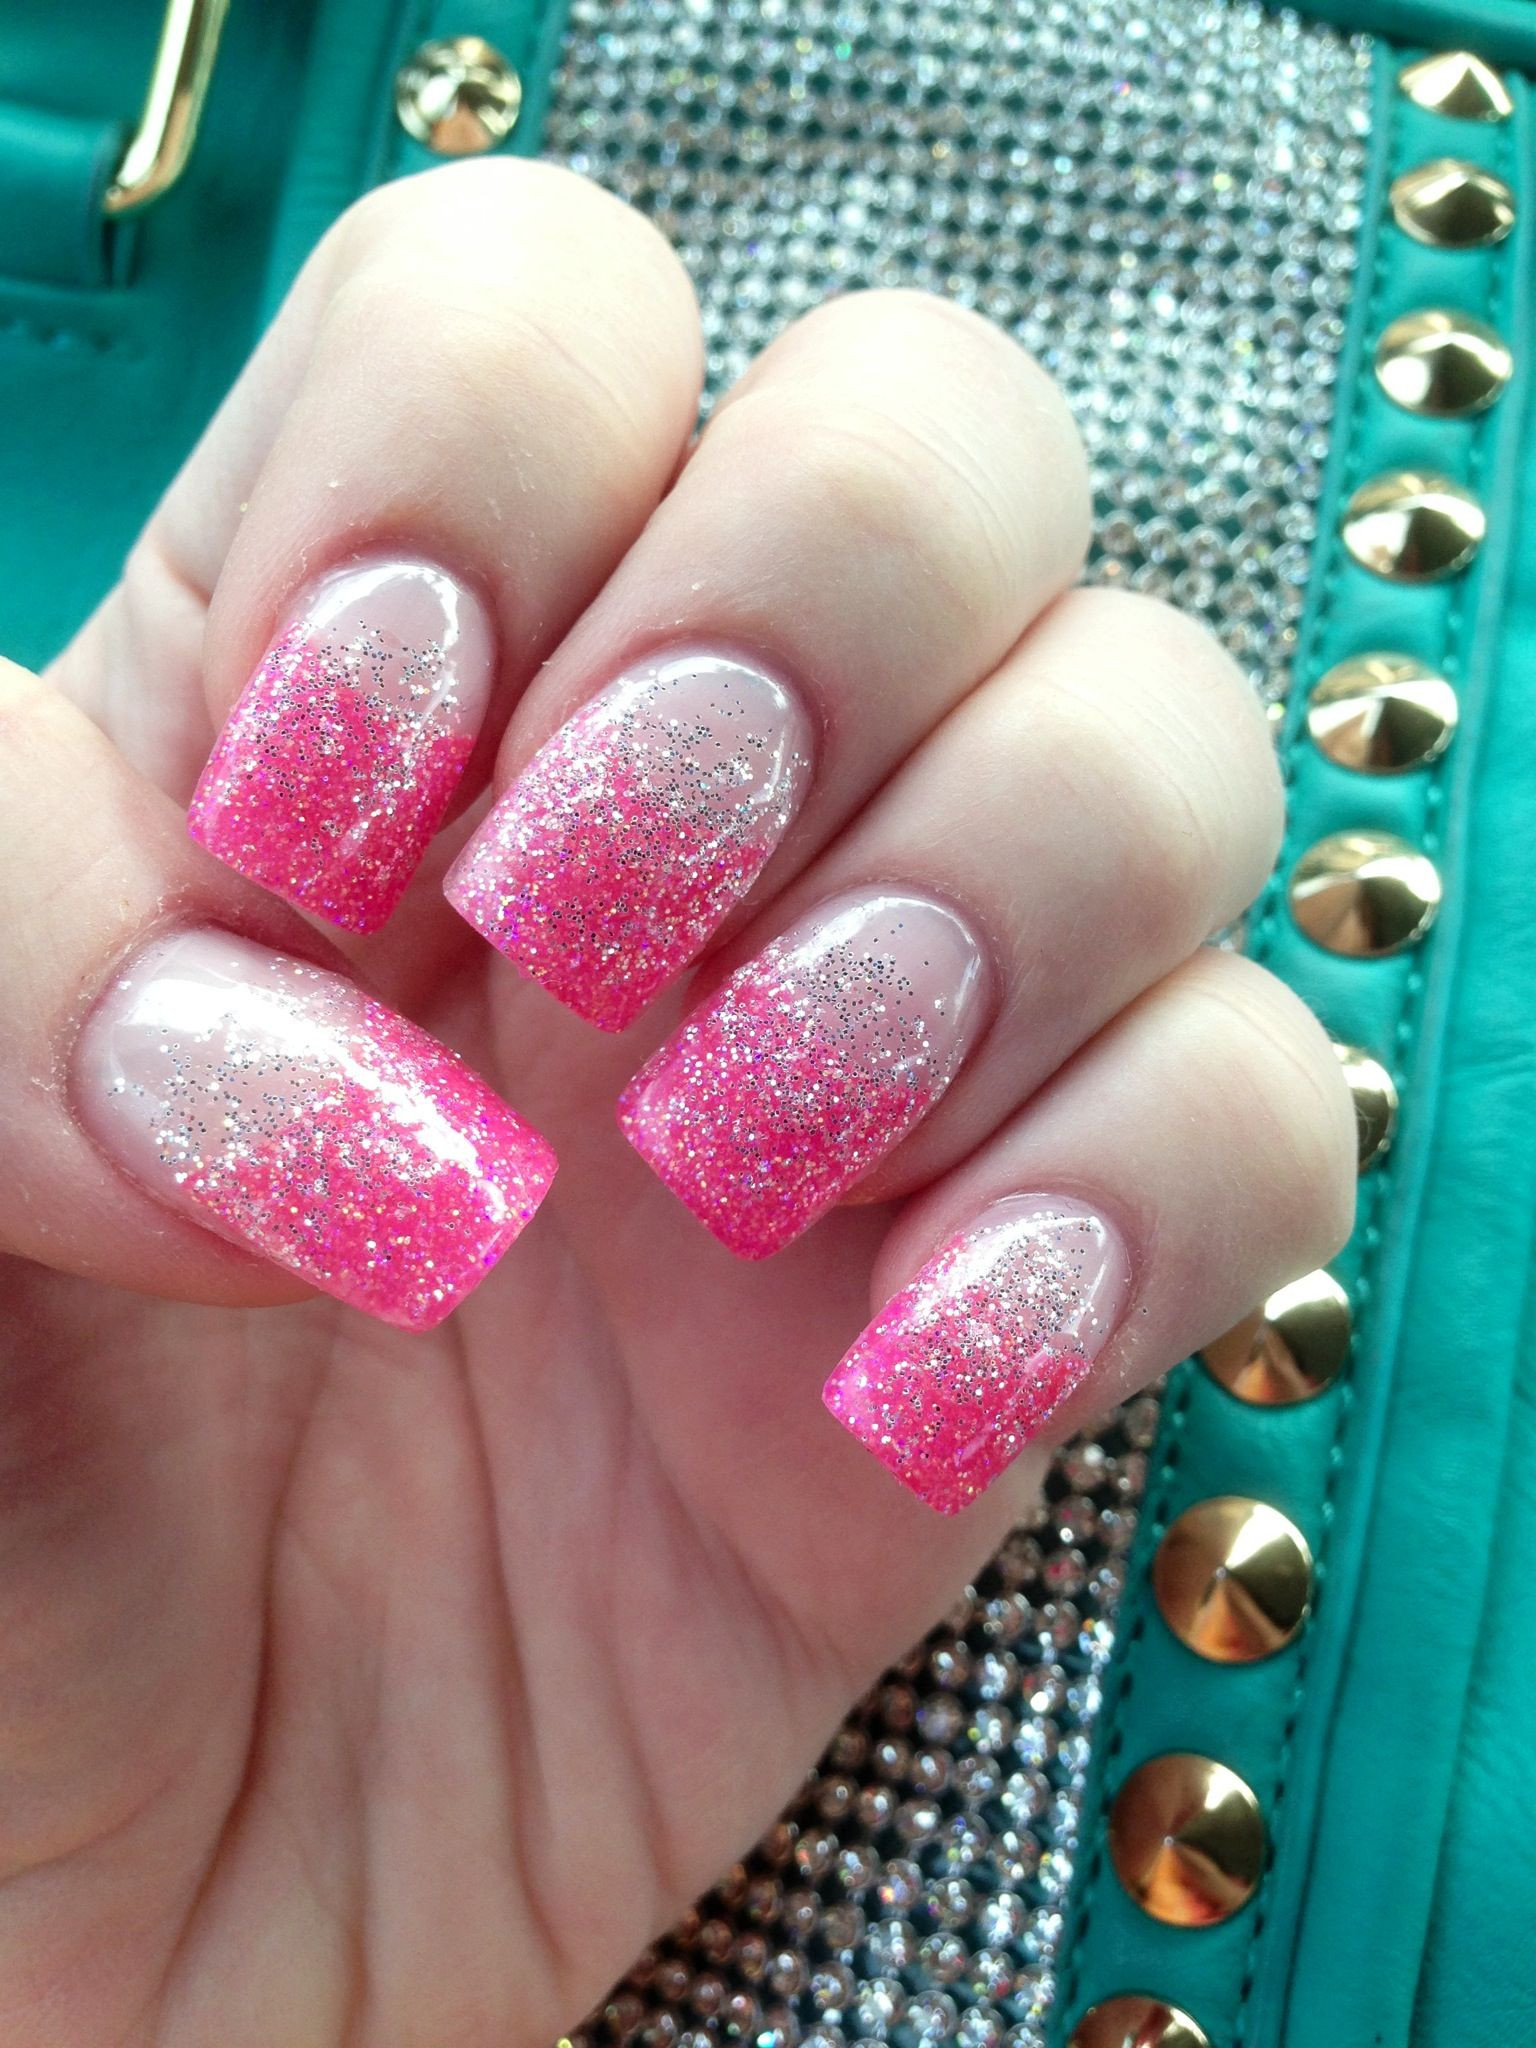 Gel Glitter Nails  Pink tips with silver glitter gel nails With images